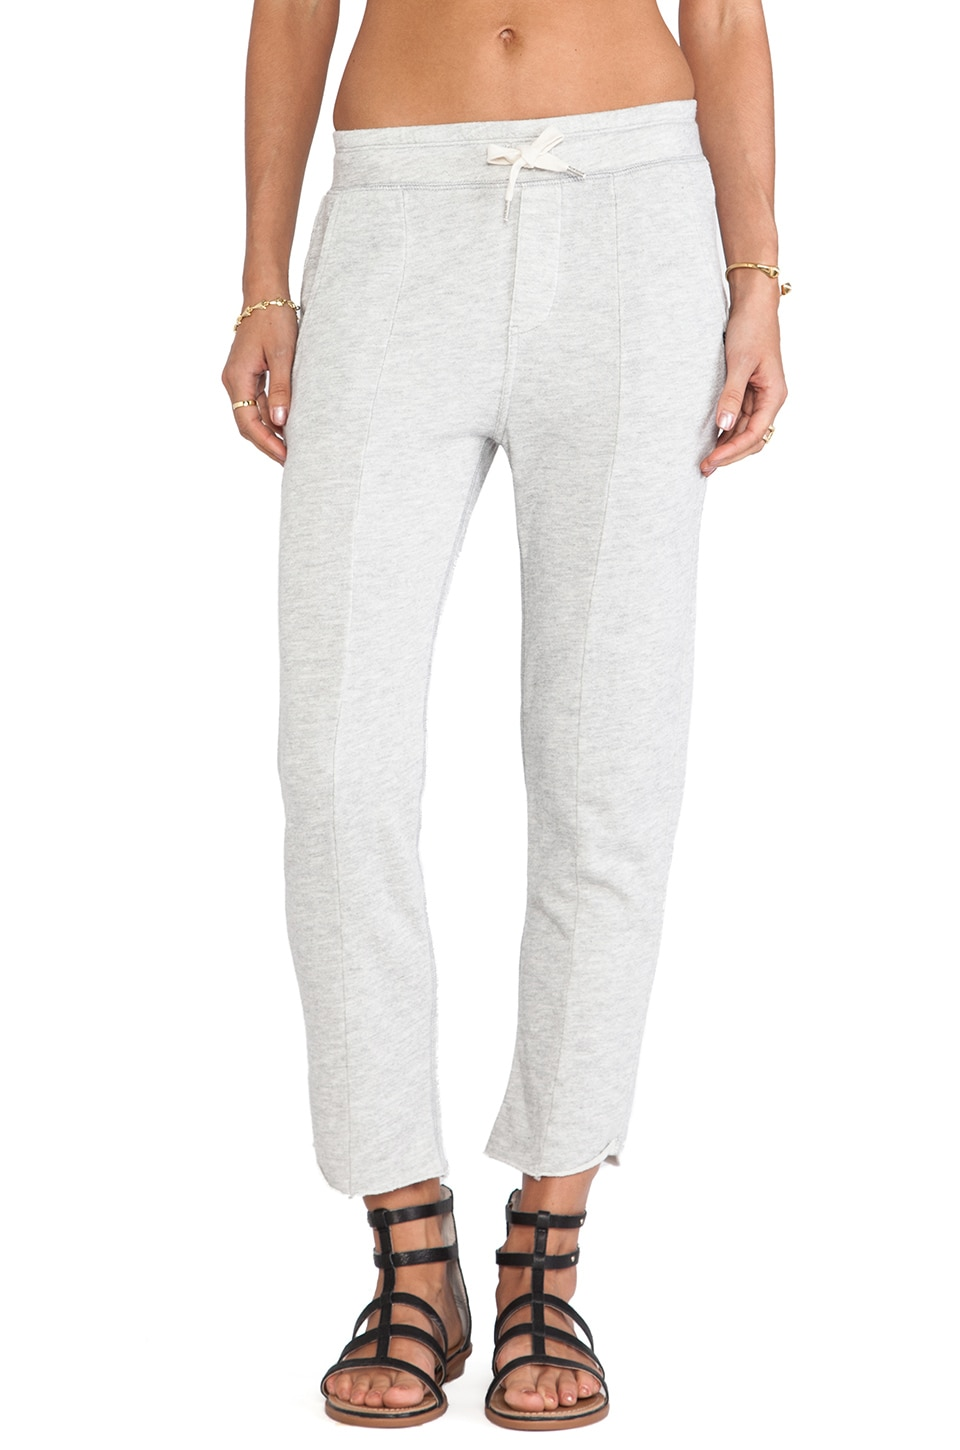 EVER Seamed Sweatpant in Heather Grey